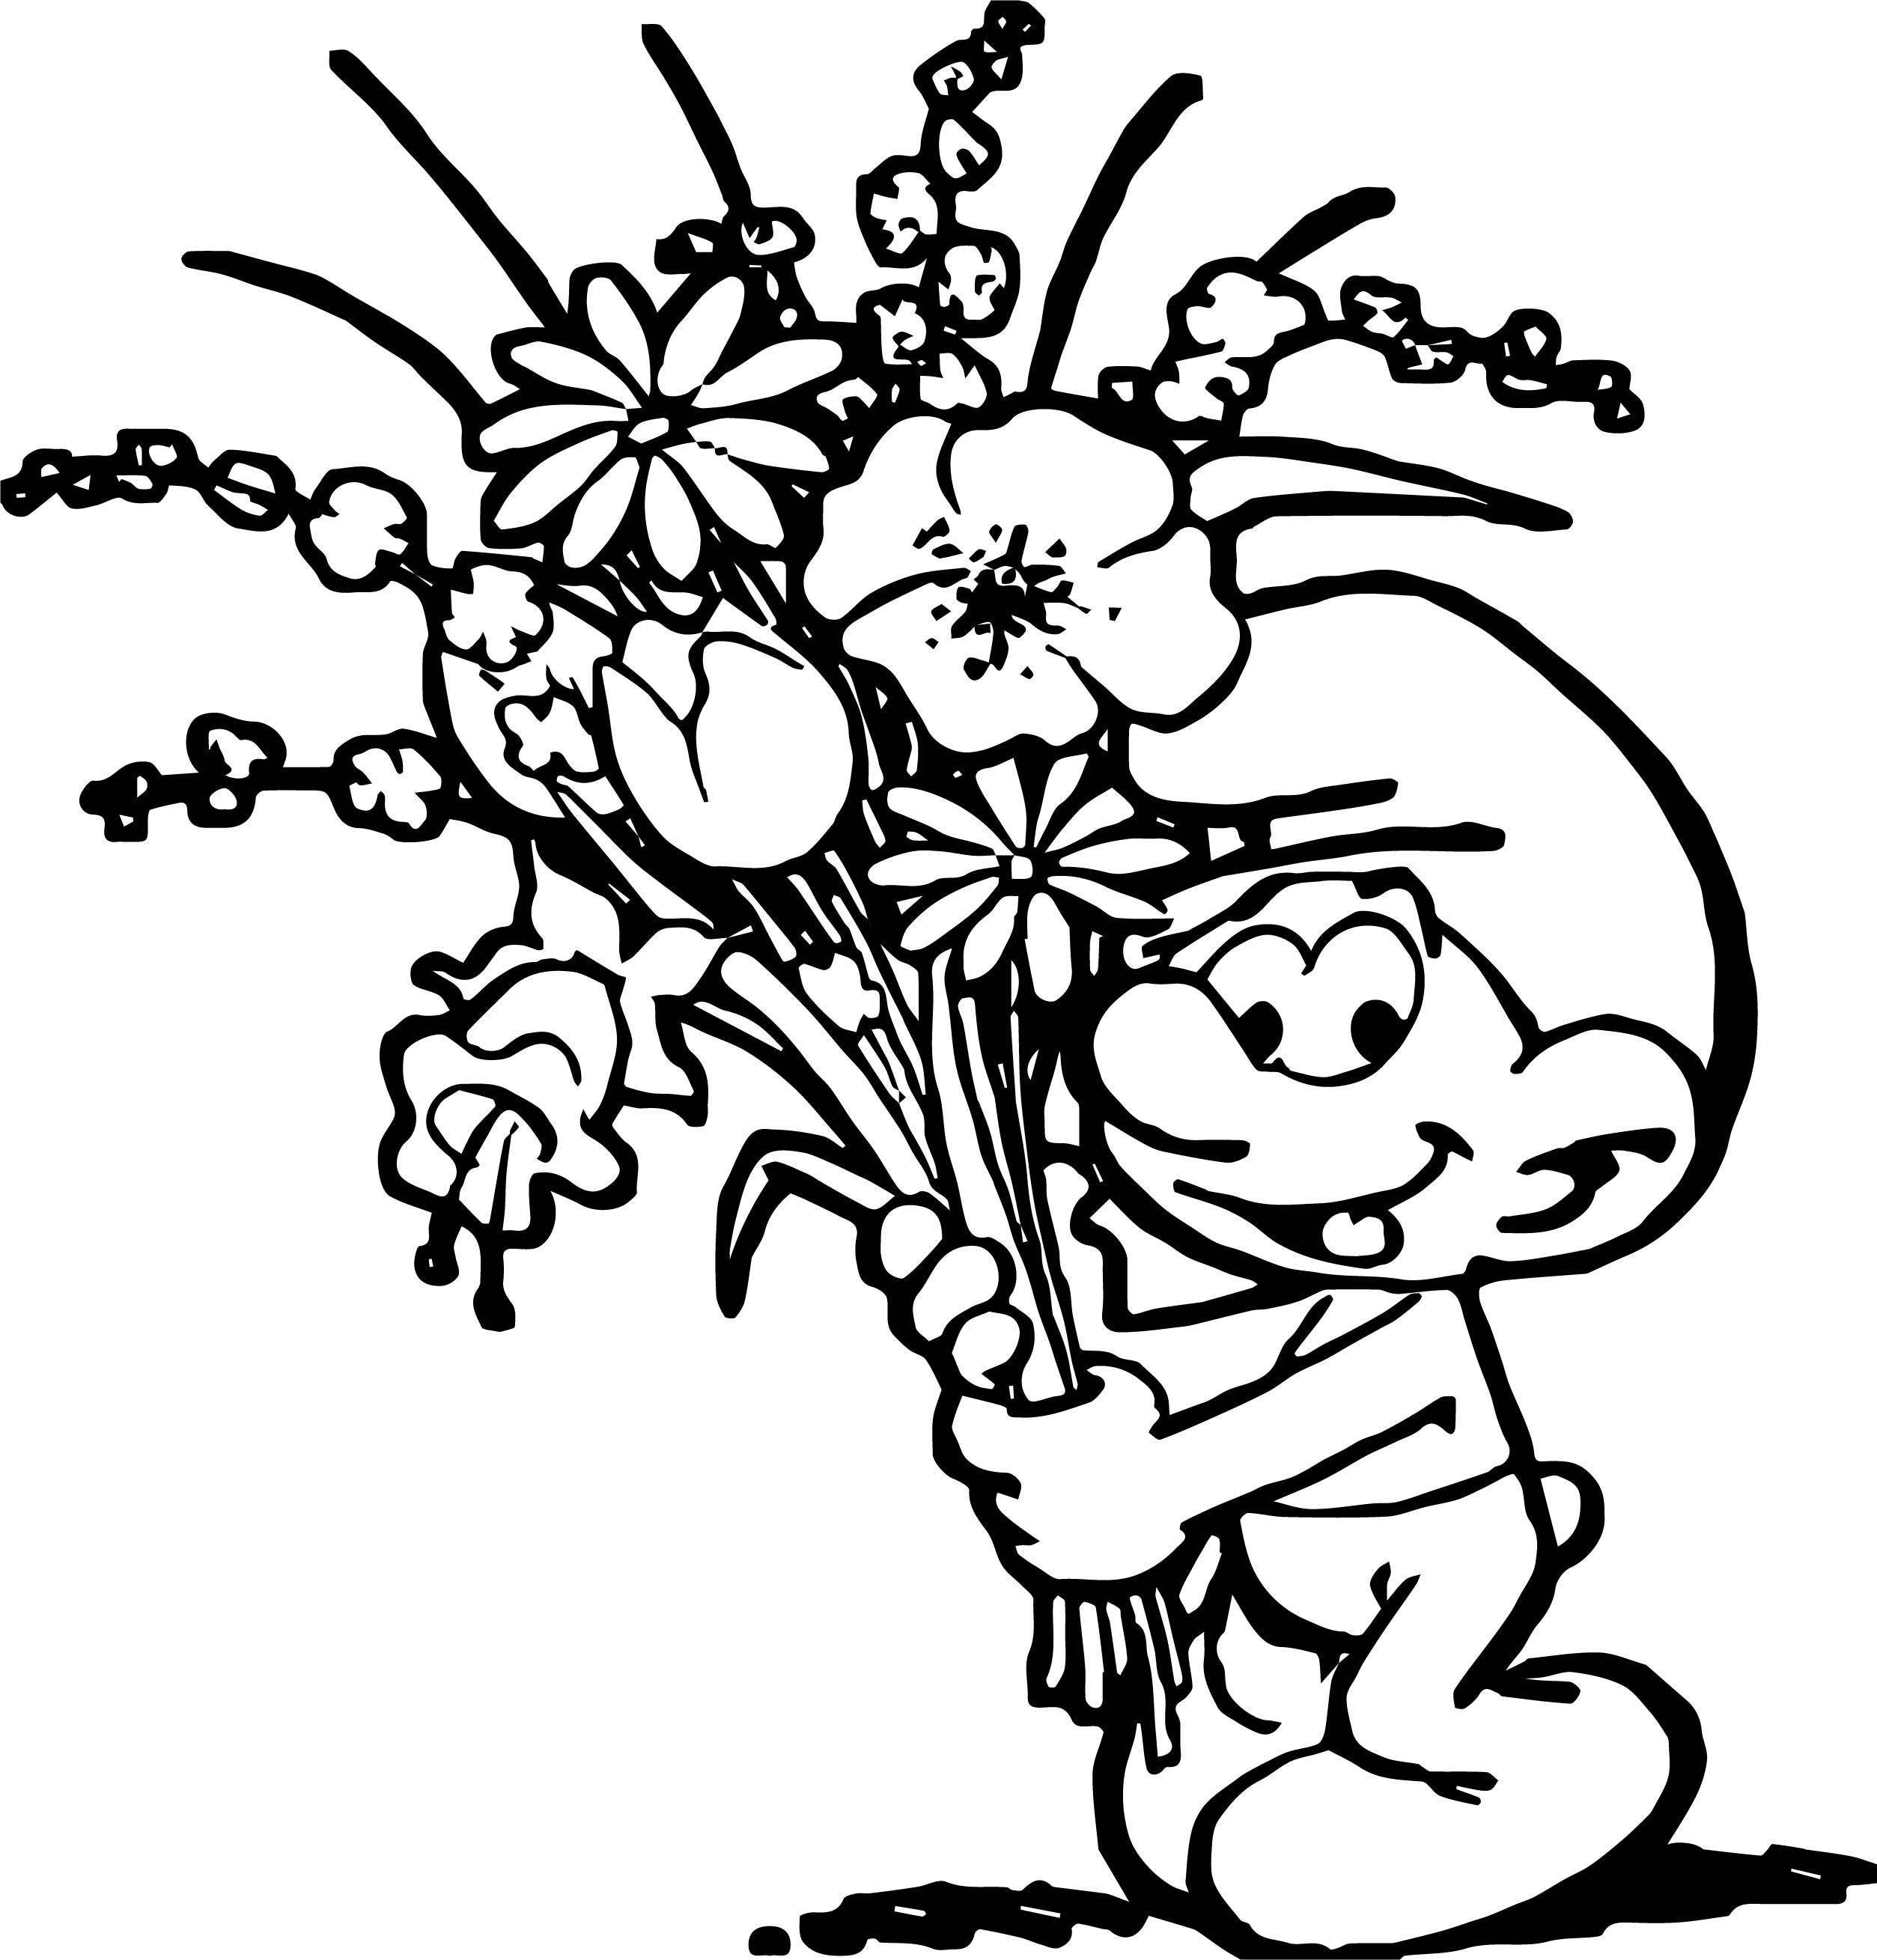 Nice Smurf Flower Coloring Page Flower Coloring Pages Dog Coloring Page Disney Coloring Pages